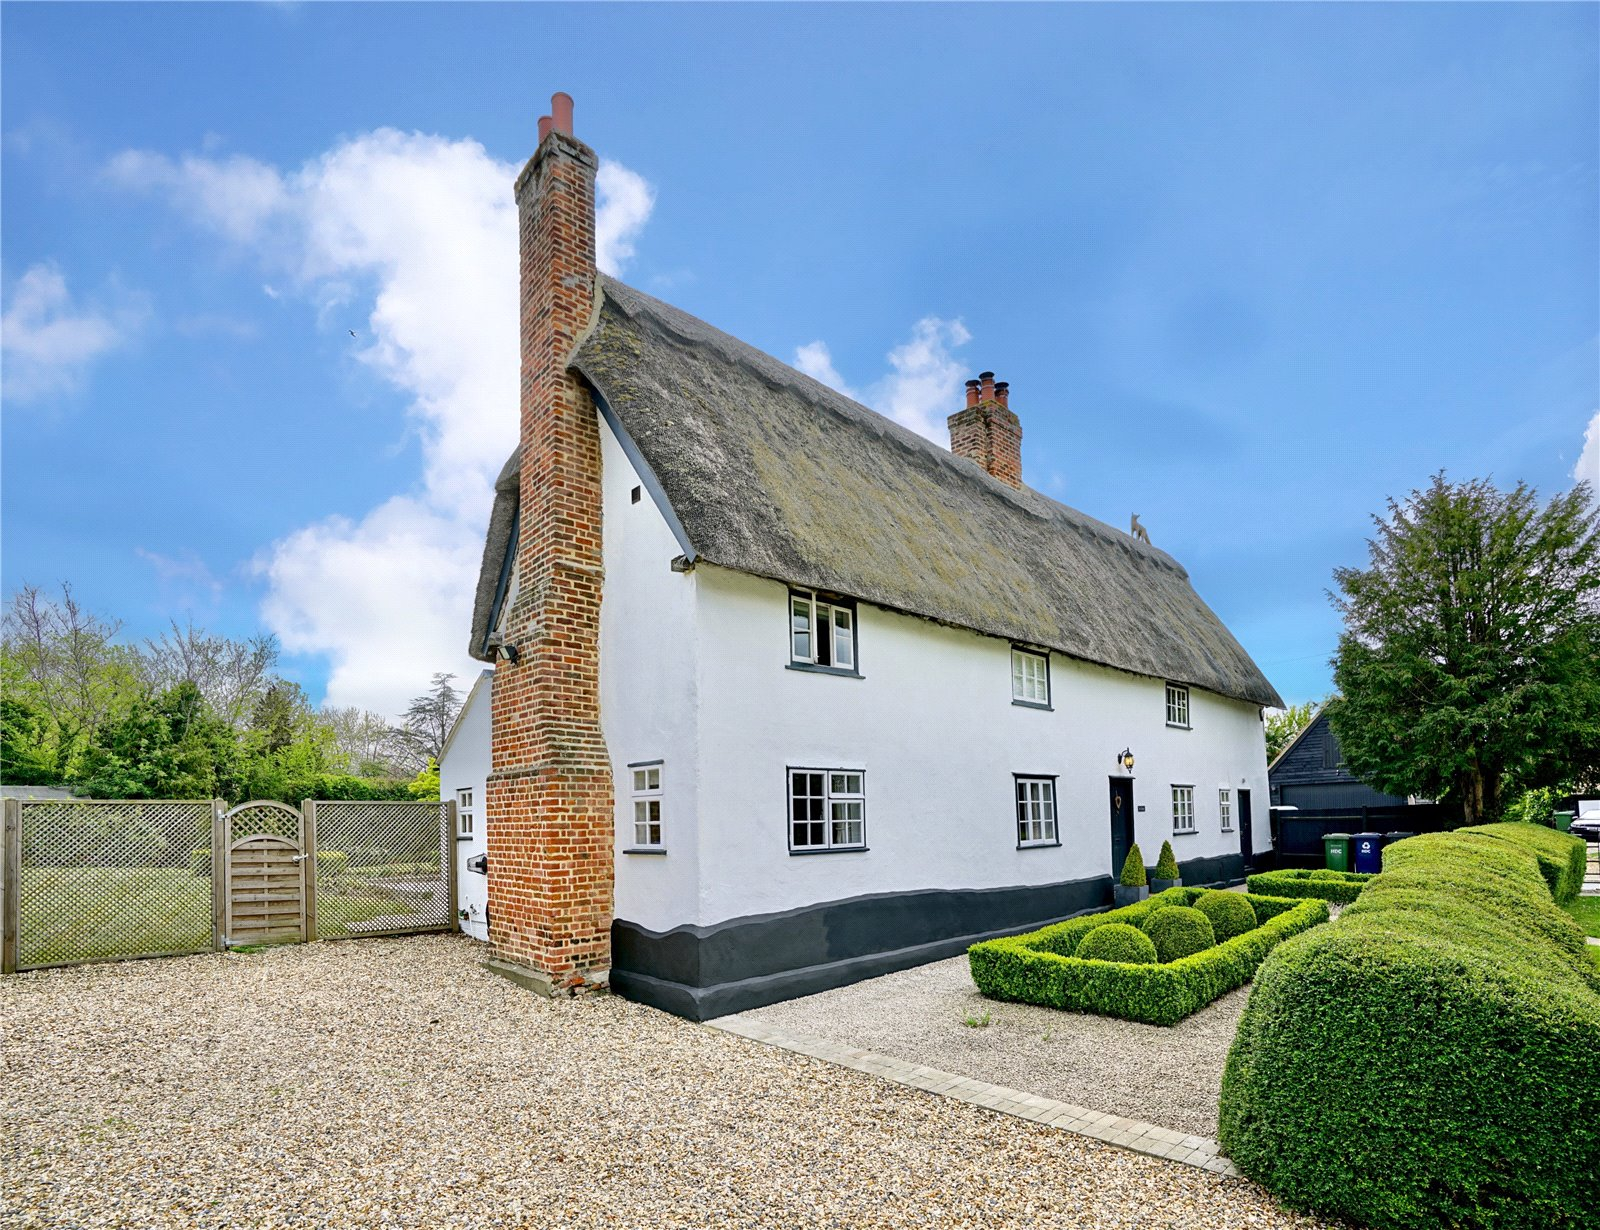 3 bed house for sale in Fox Street, Great Gransden 14